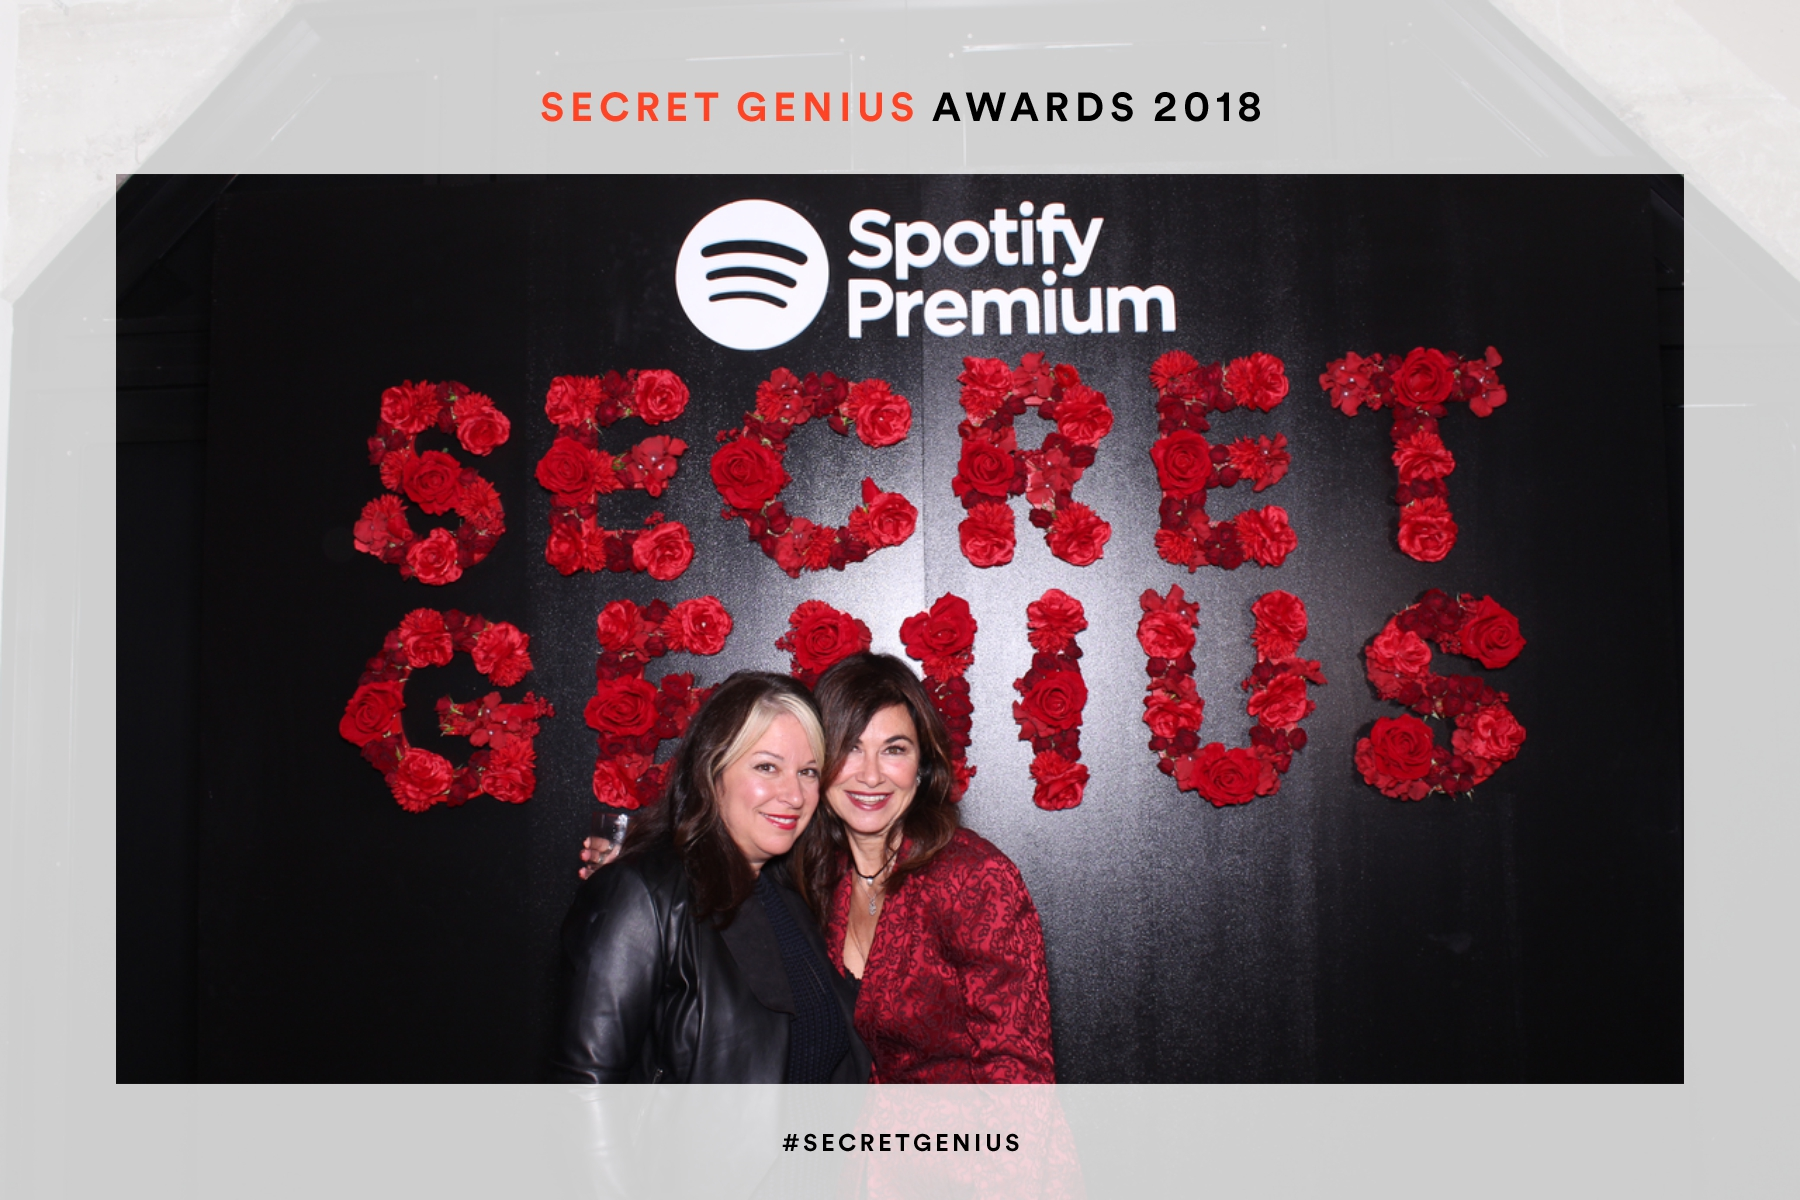 spotify secret genius 2.jpg